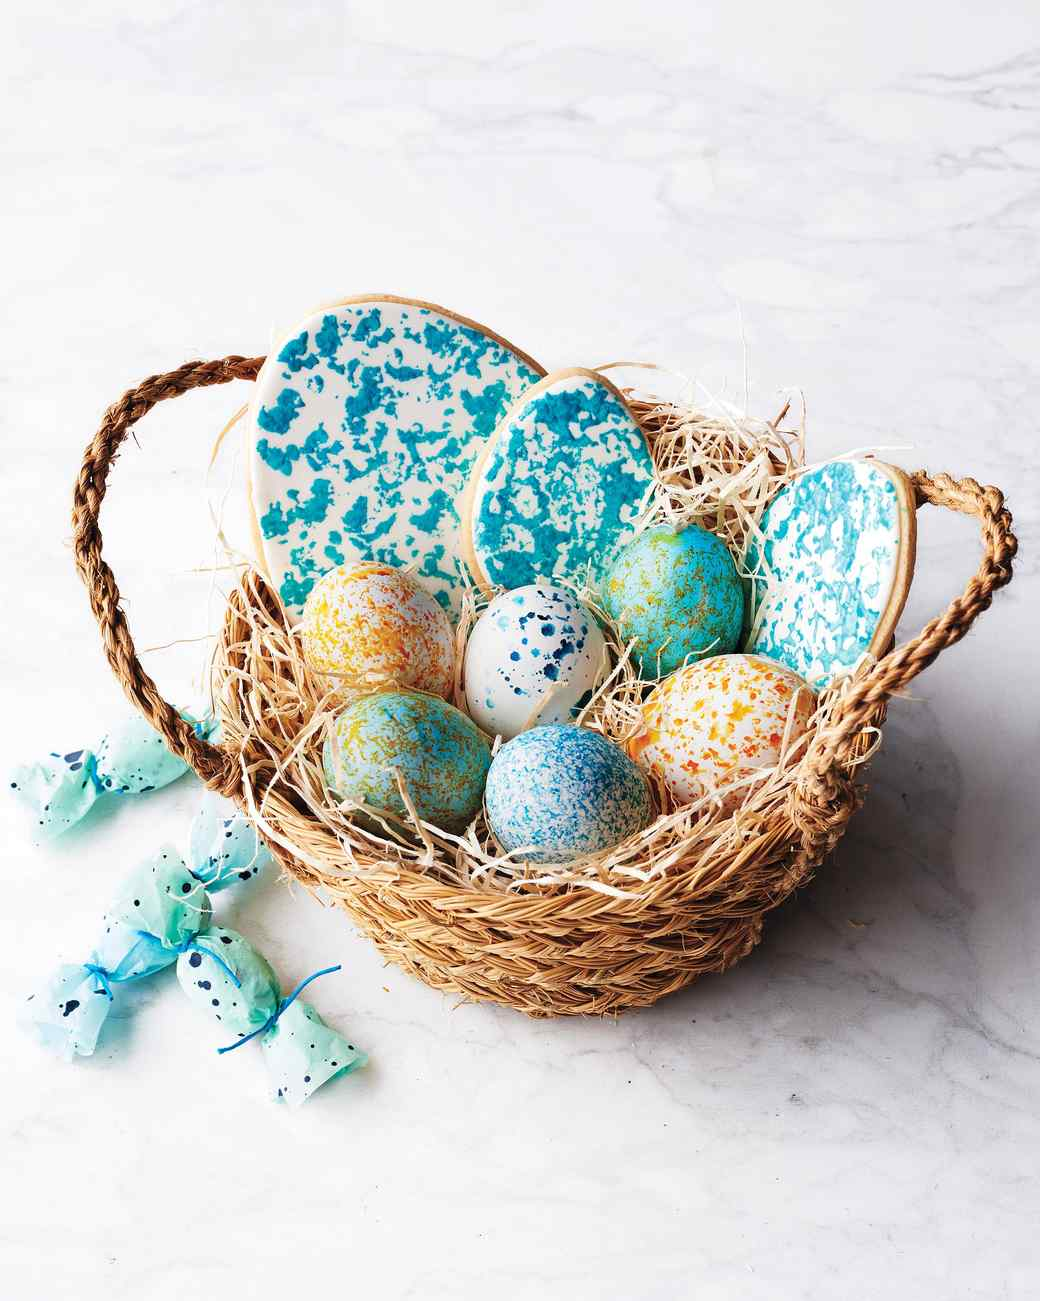 Homemade christian easter gift basket ideas christmas ideas 2018 homemade christian easter gift basket ideas negle Choice Image